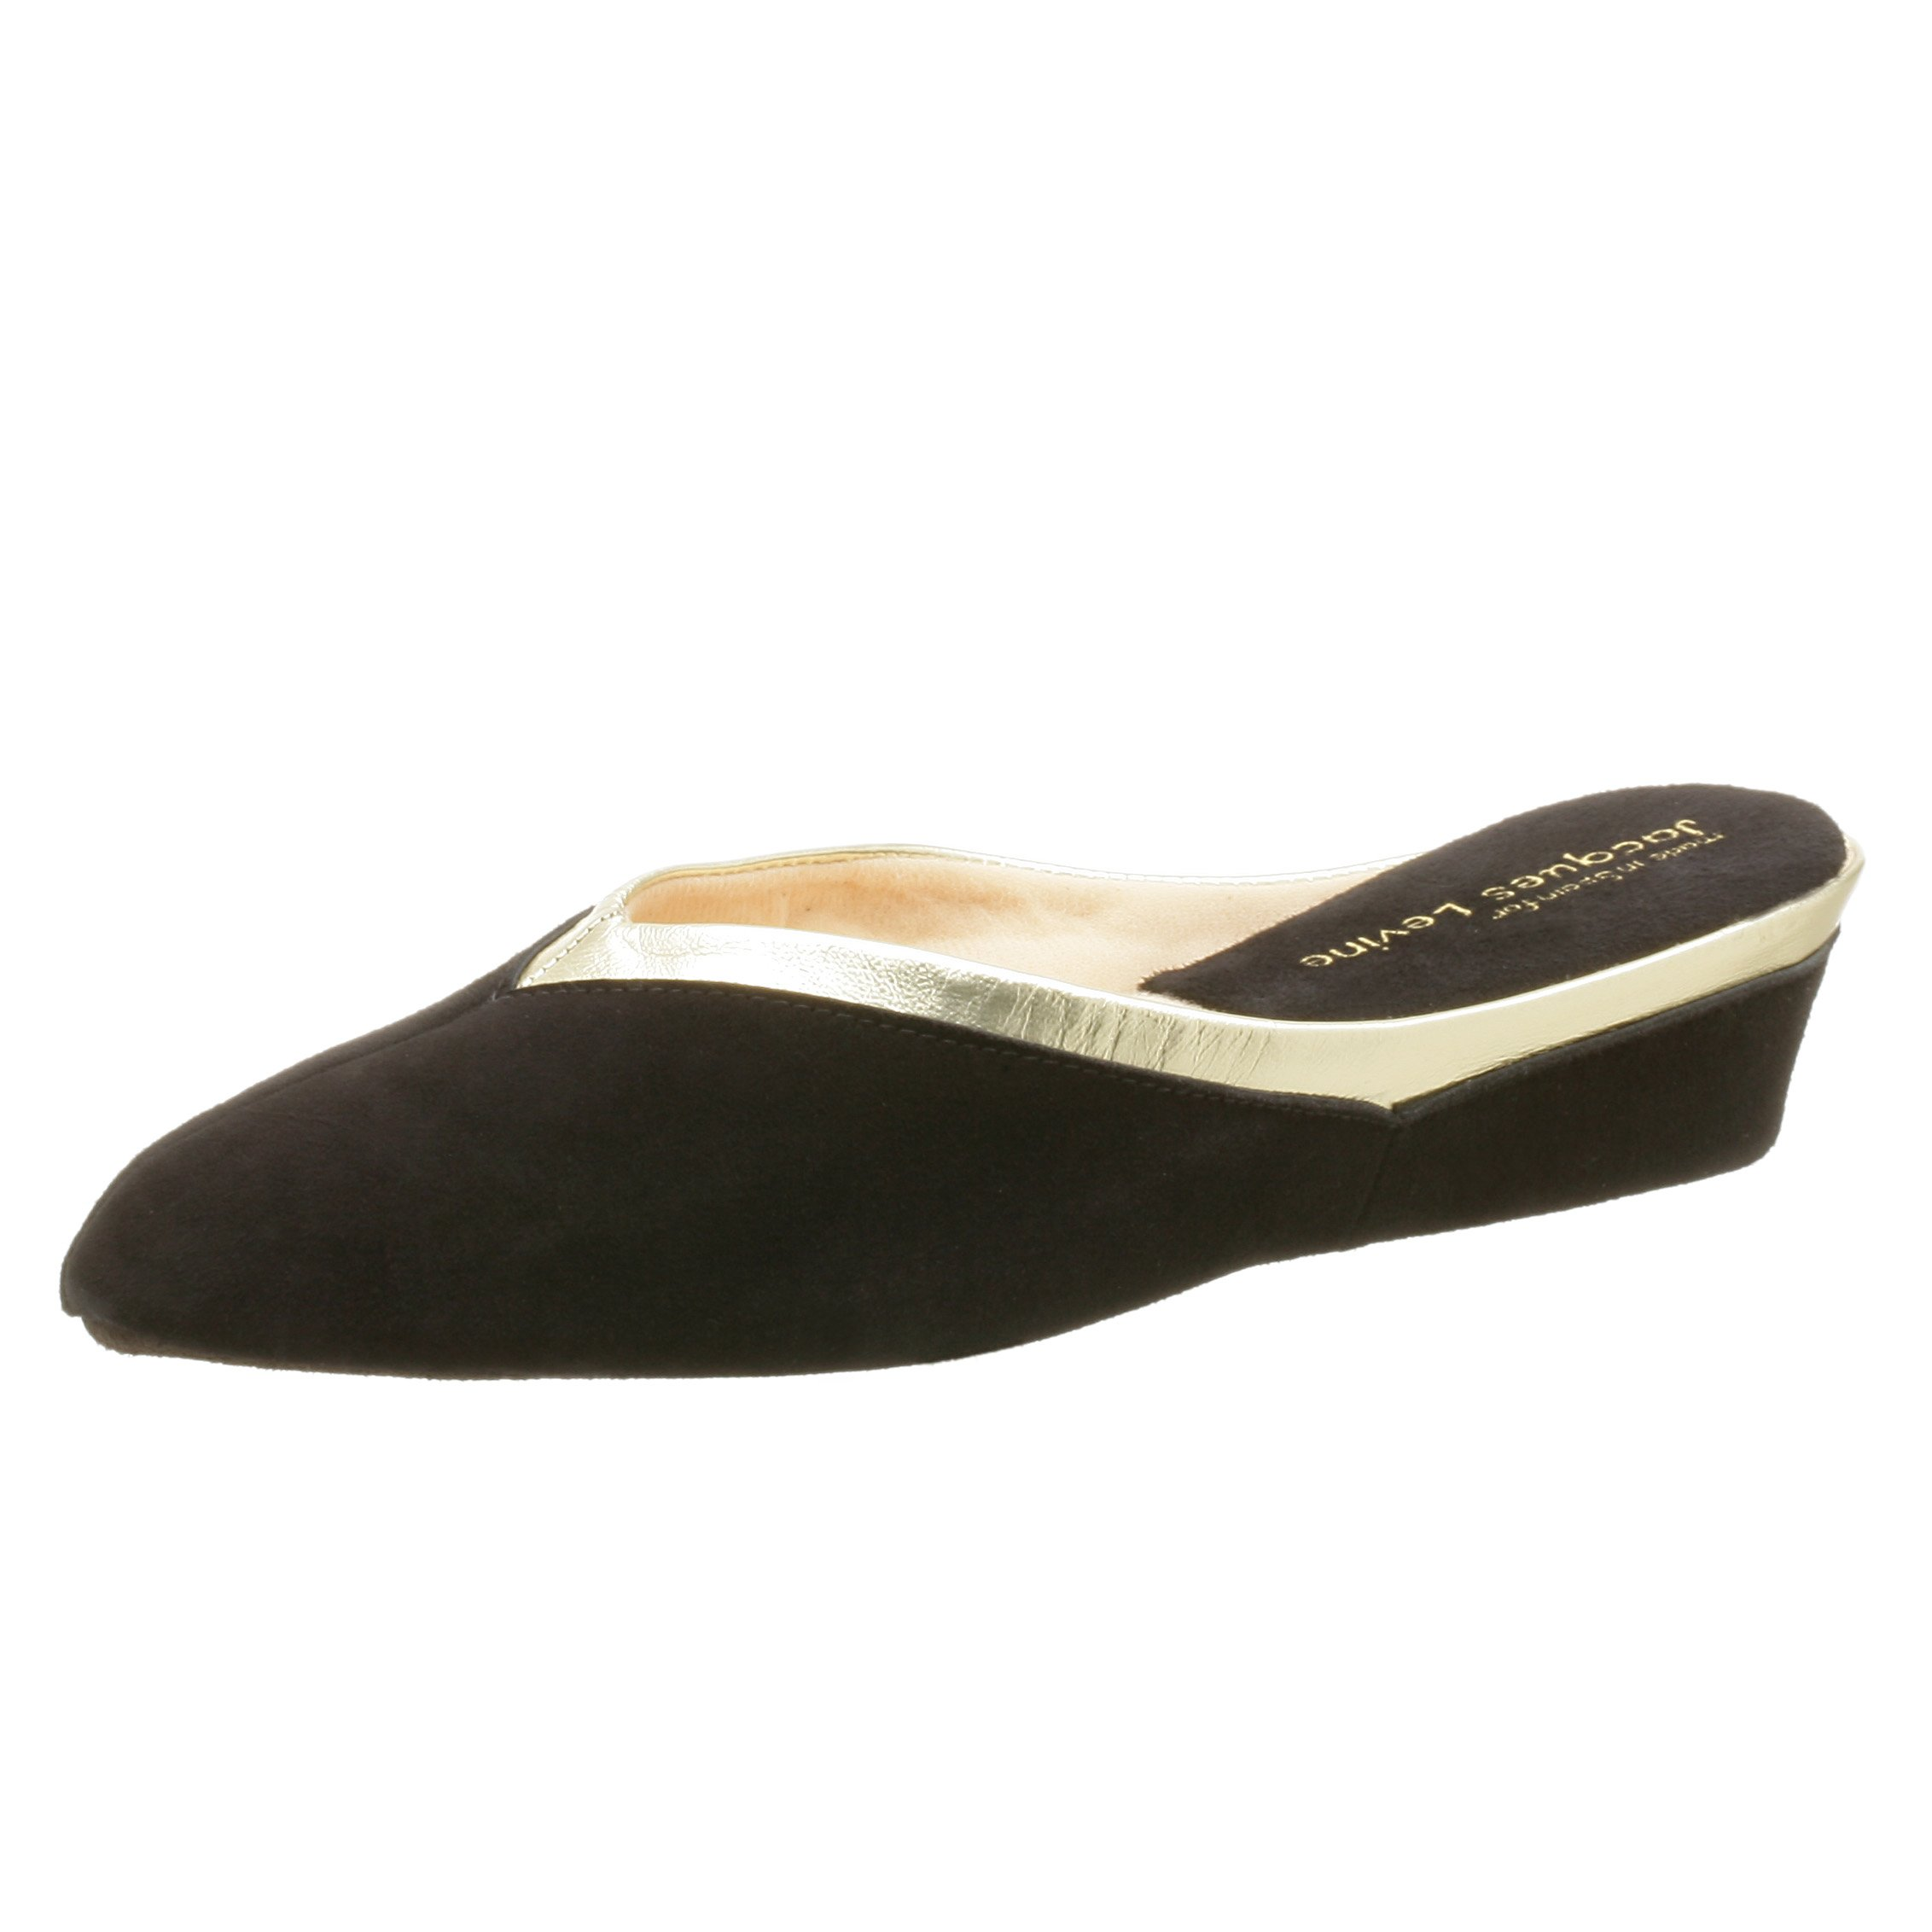 Jacques Levine Women's 4640 Throat Collar Scuff Slipper,Black/Gold,6.5 M